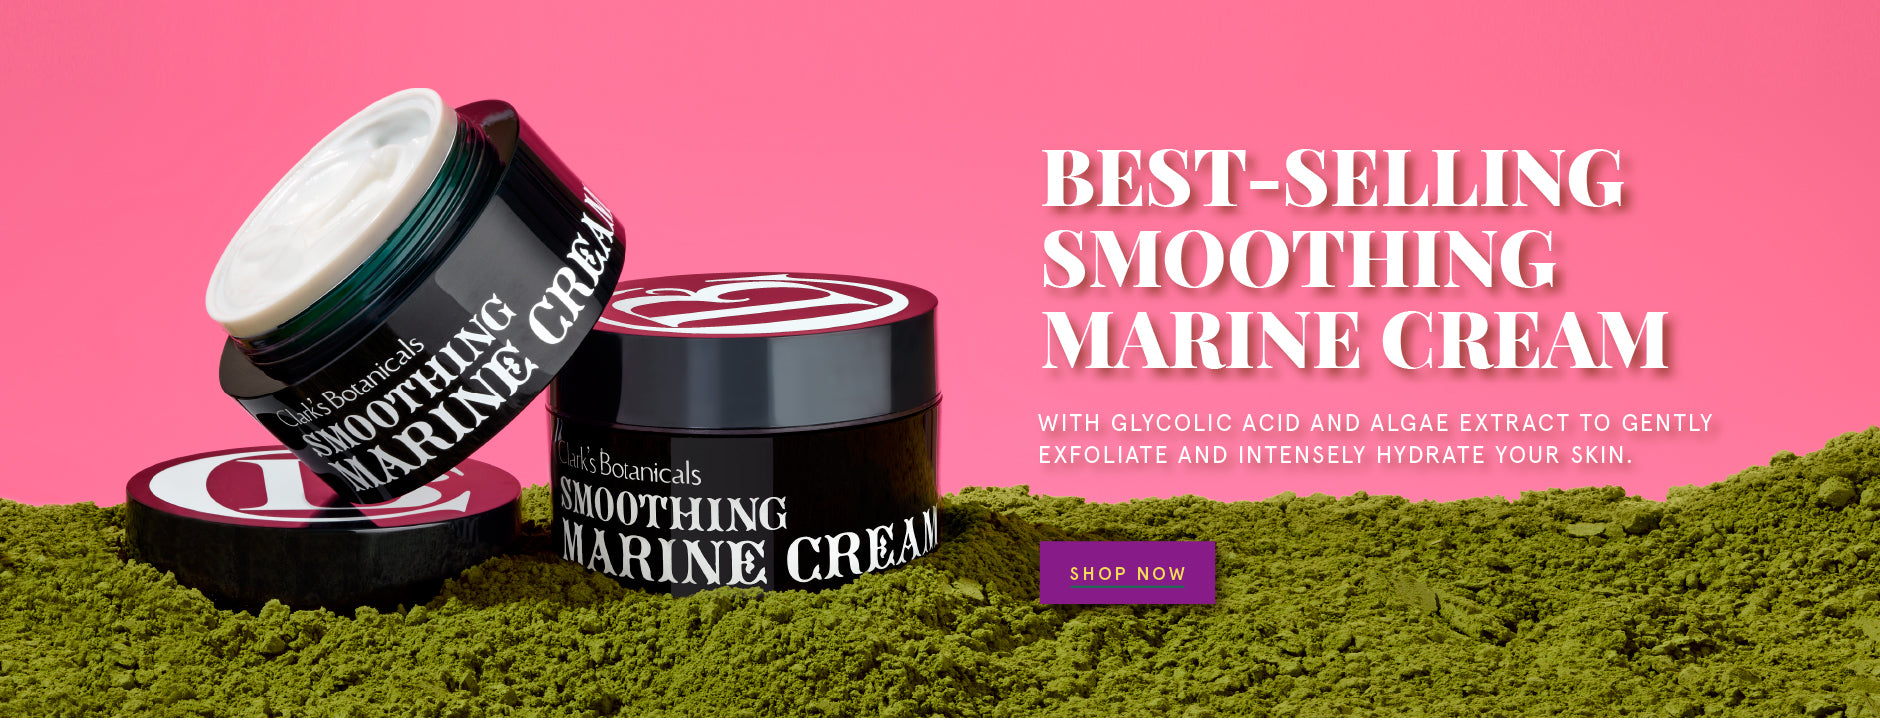 Smoothing Marine Cream Clark's Botanicals Luxury Beauty Products